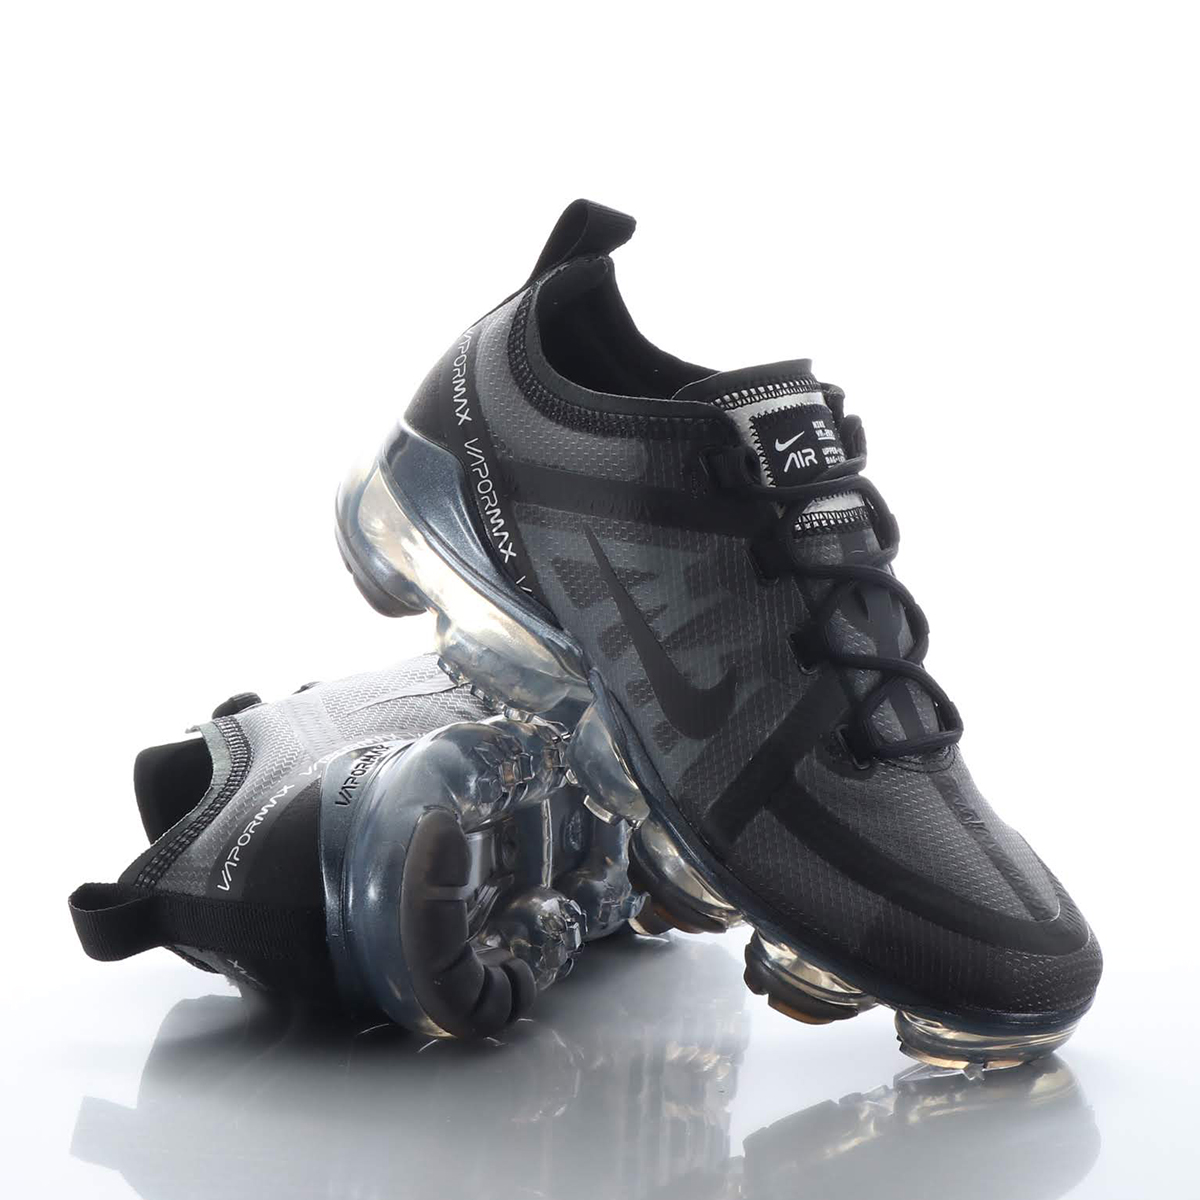 bbfff43c50e9 Woo with advanced elasticity skills is material and the Nike air vapor max  2019 women running shoes wrap up a foot